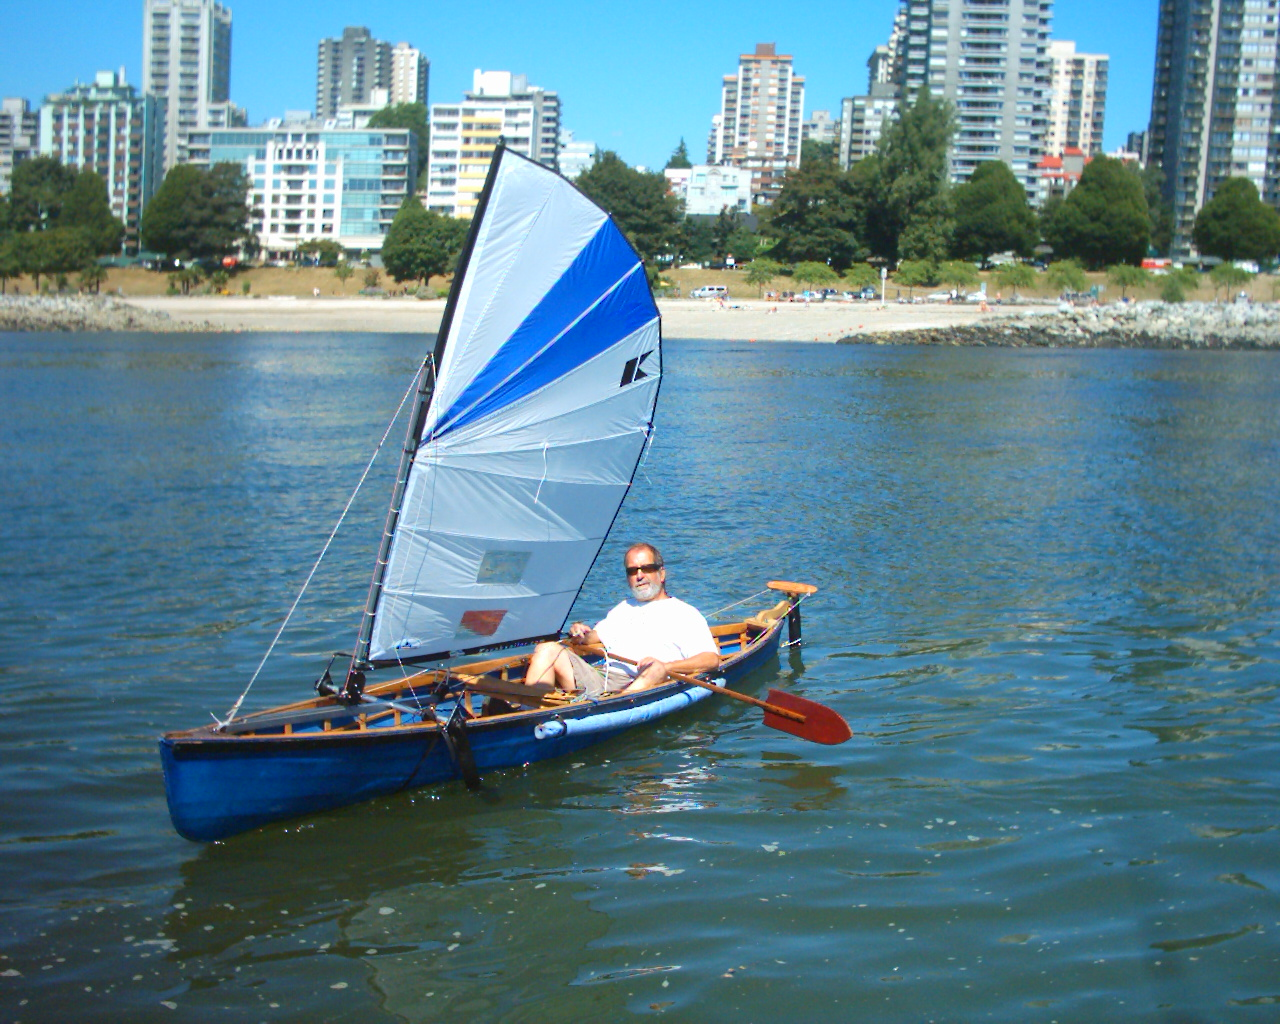 kayak sailing rig